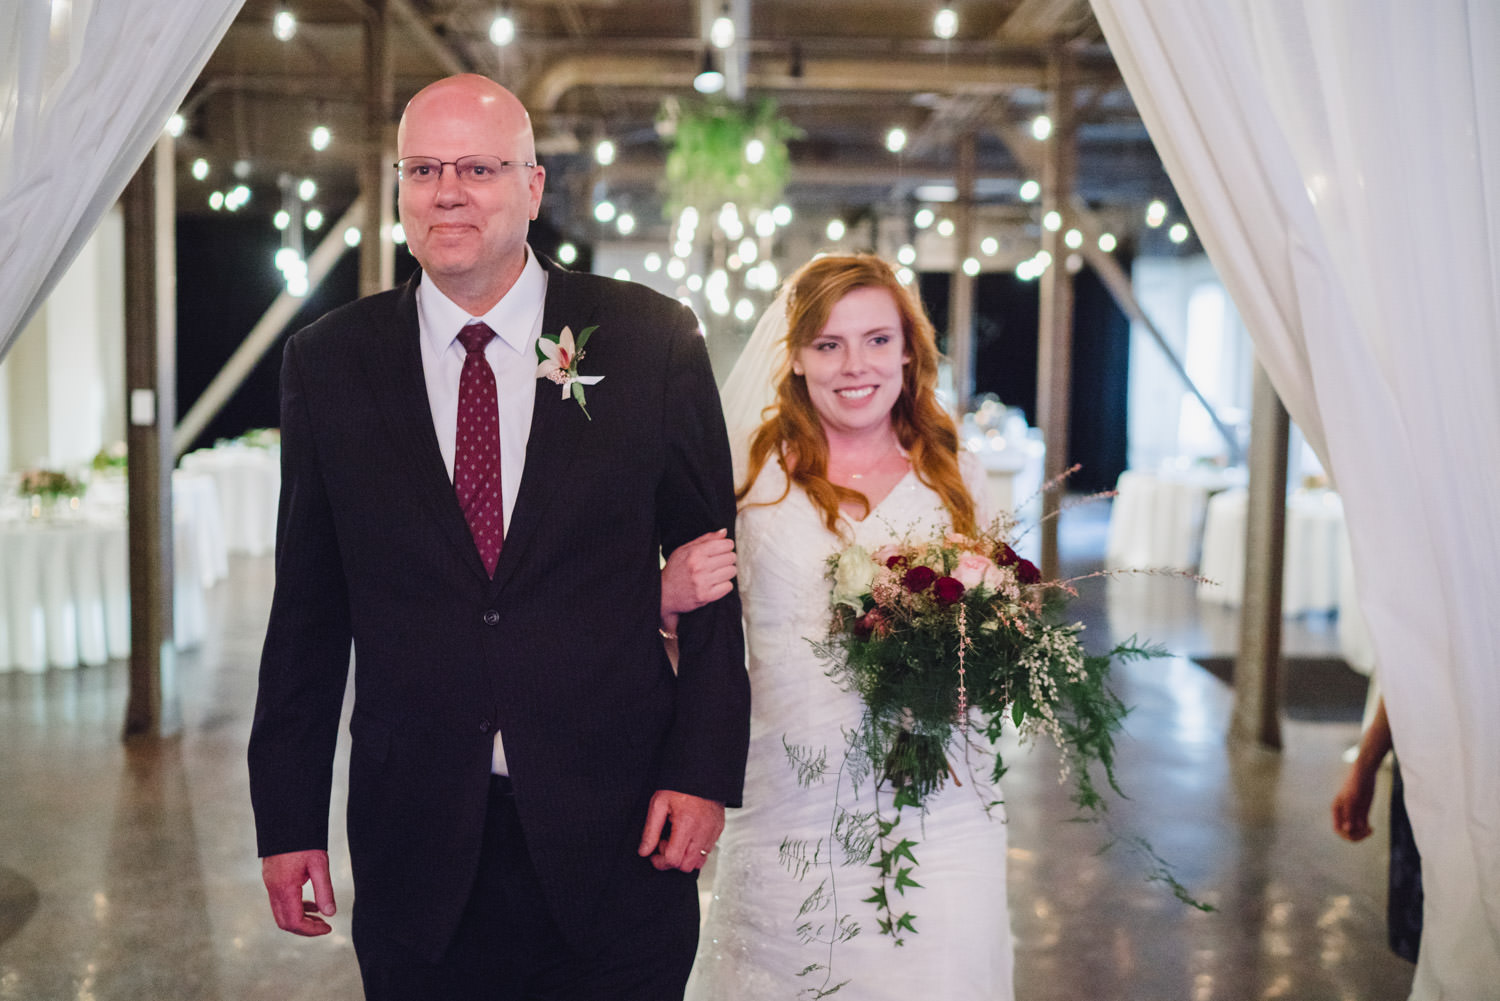 Pierpont Place wedding bride walking down aisle at ceremony photo